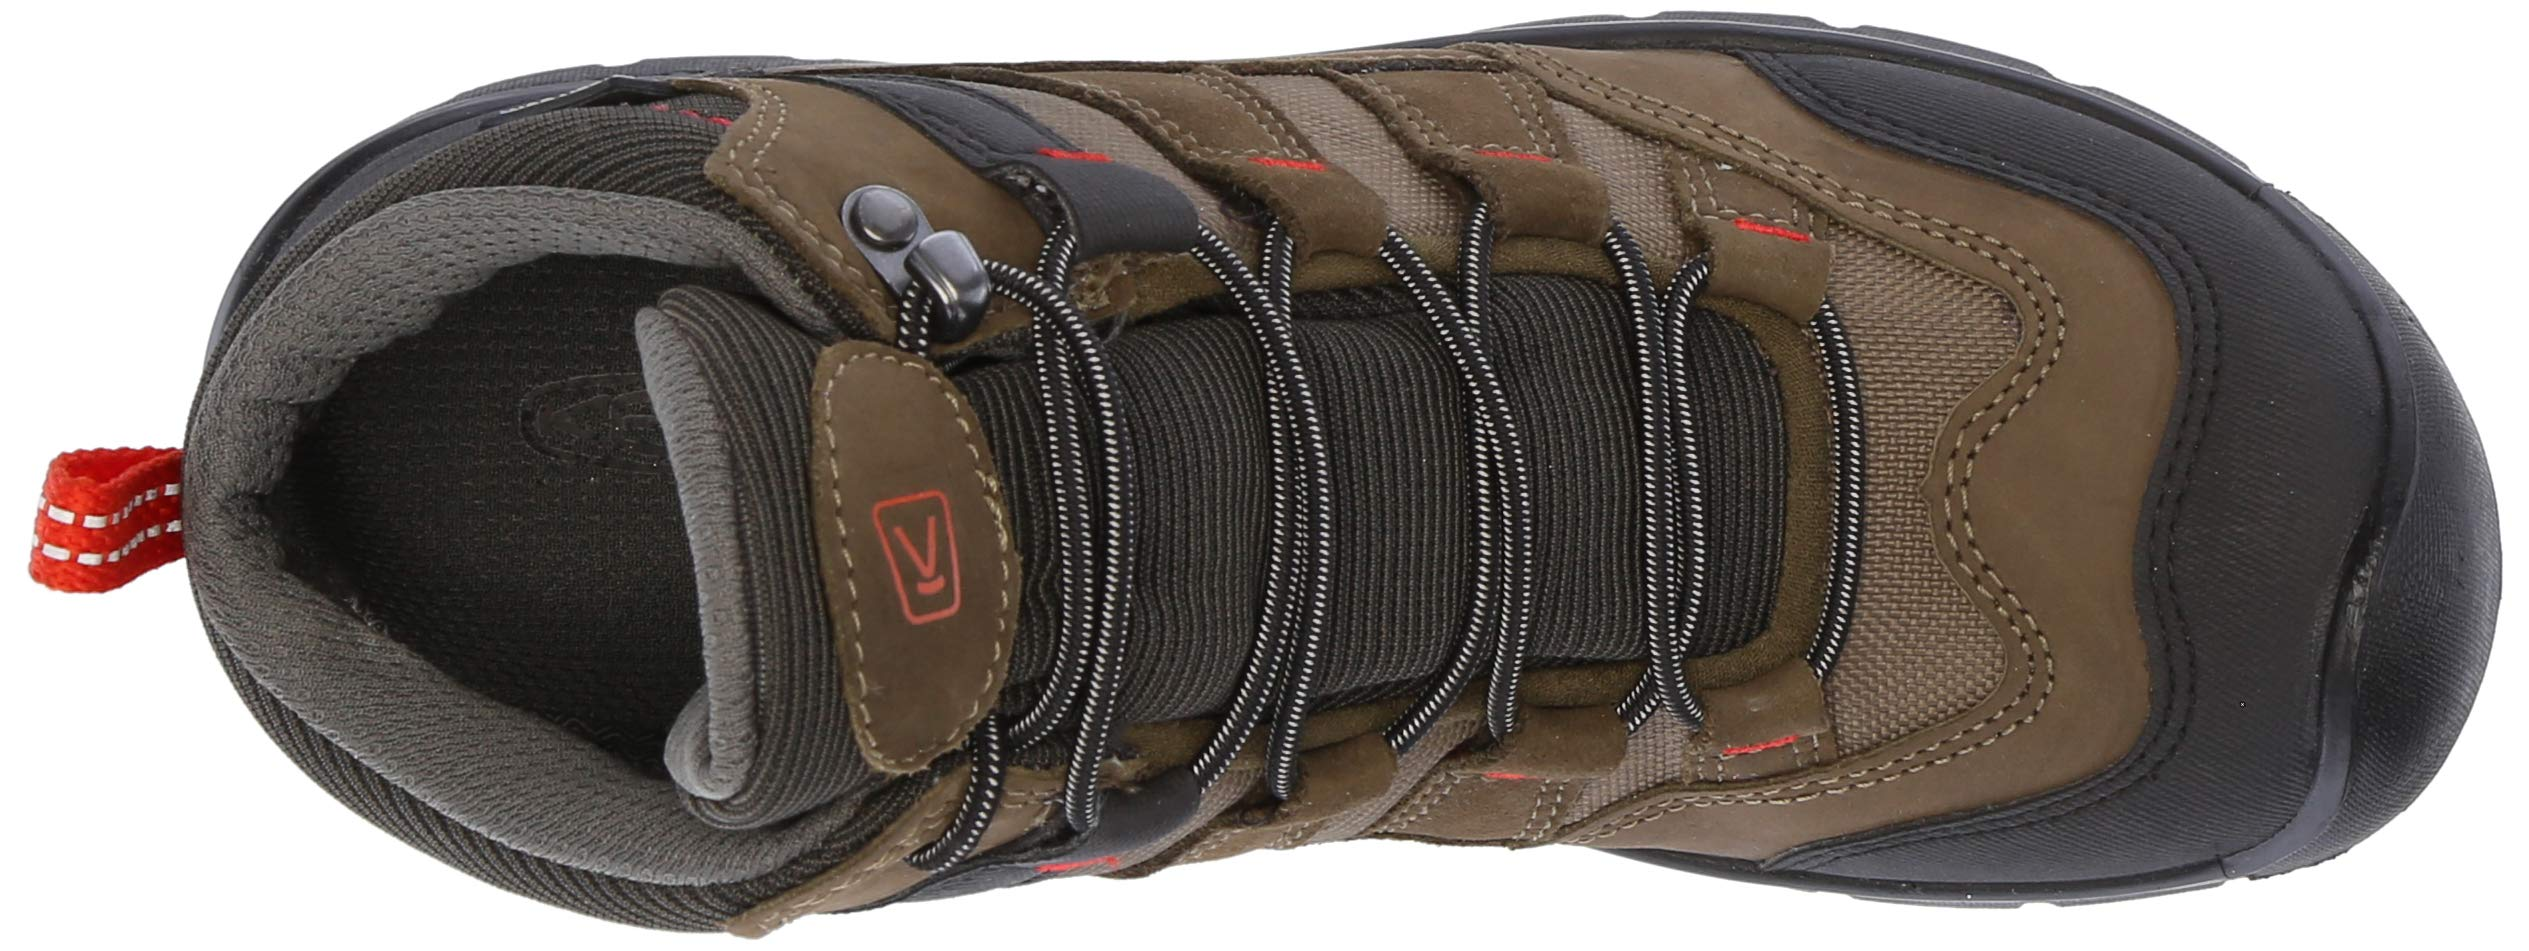 KEEN Unisex HIKEPORT MID WP Hiking Boot, Martini Olive/pureed Pumpkin, 12 M US Little Kid by KEEN (Image #8)